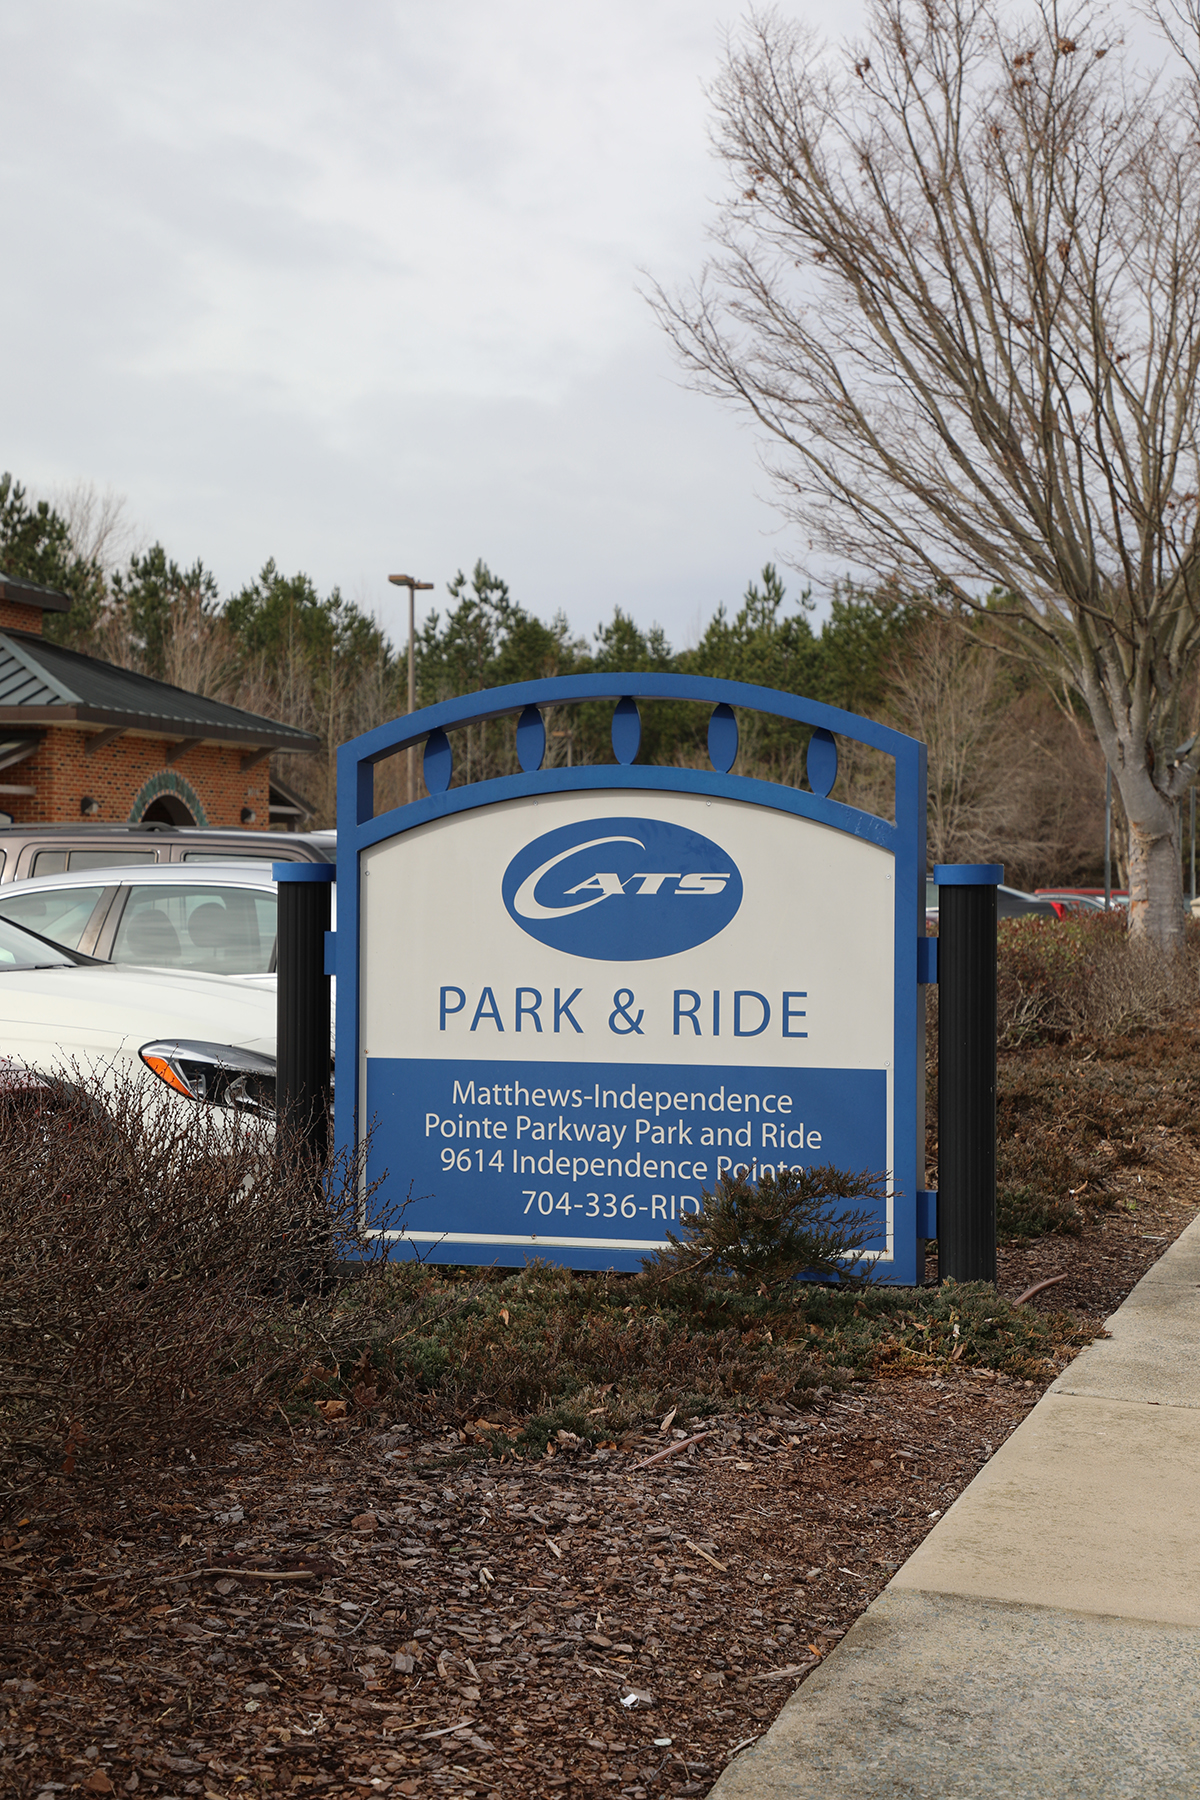 Park and Ride center at Indpendence Pointe Parkway.